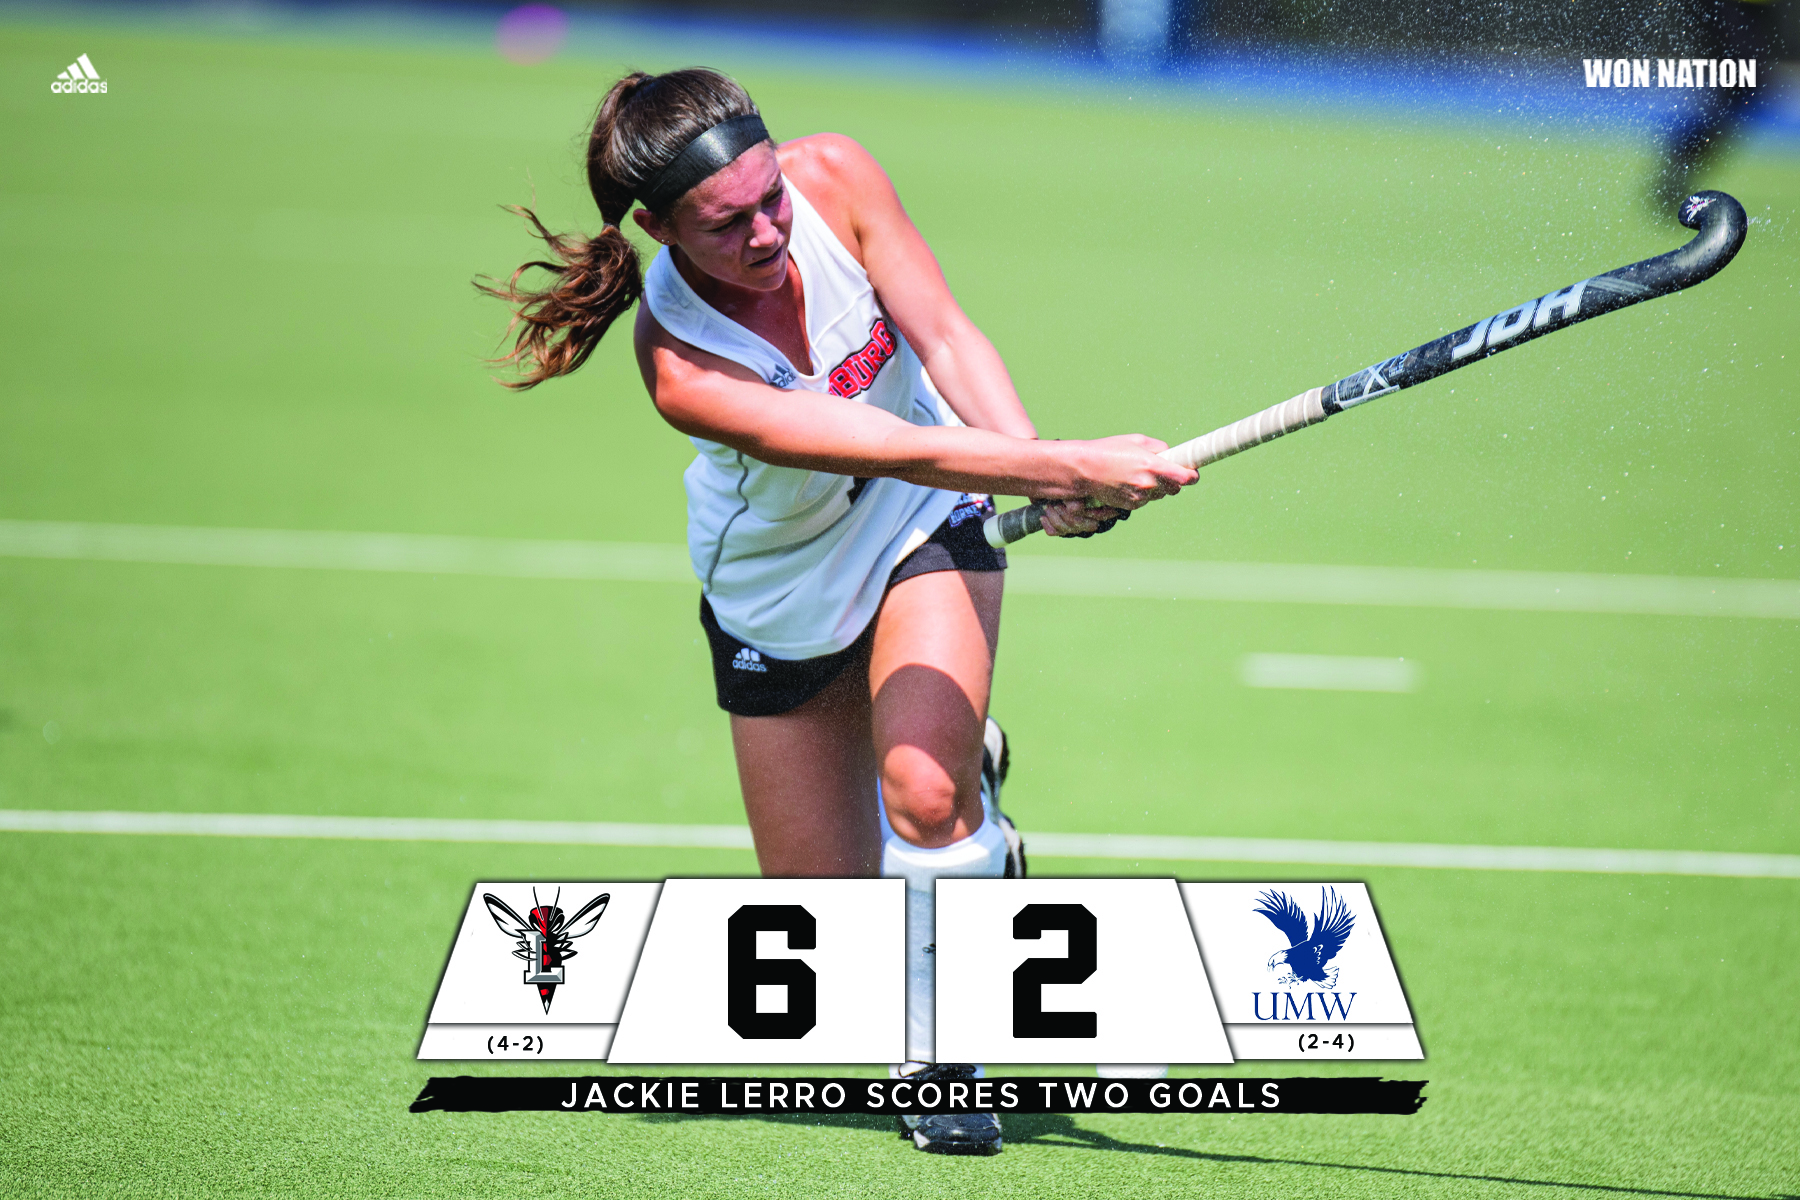 Lerro leads field hockey in win over Mary Washington